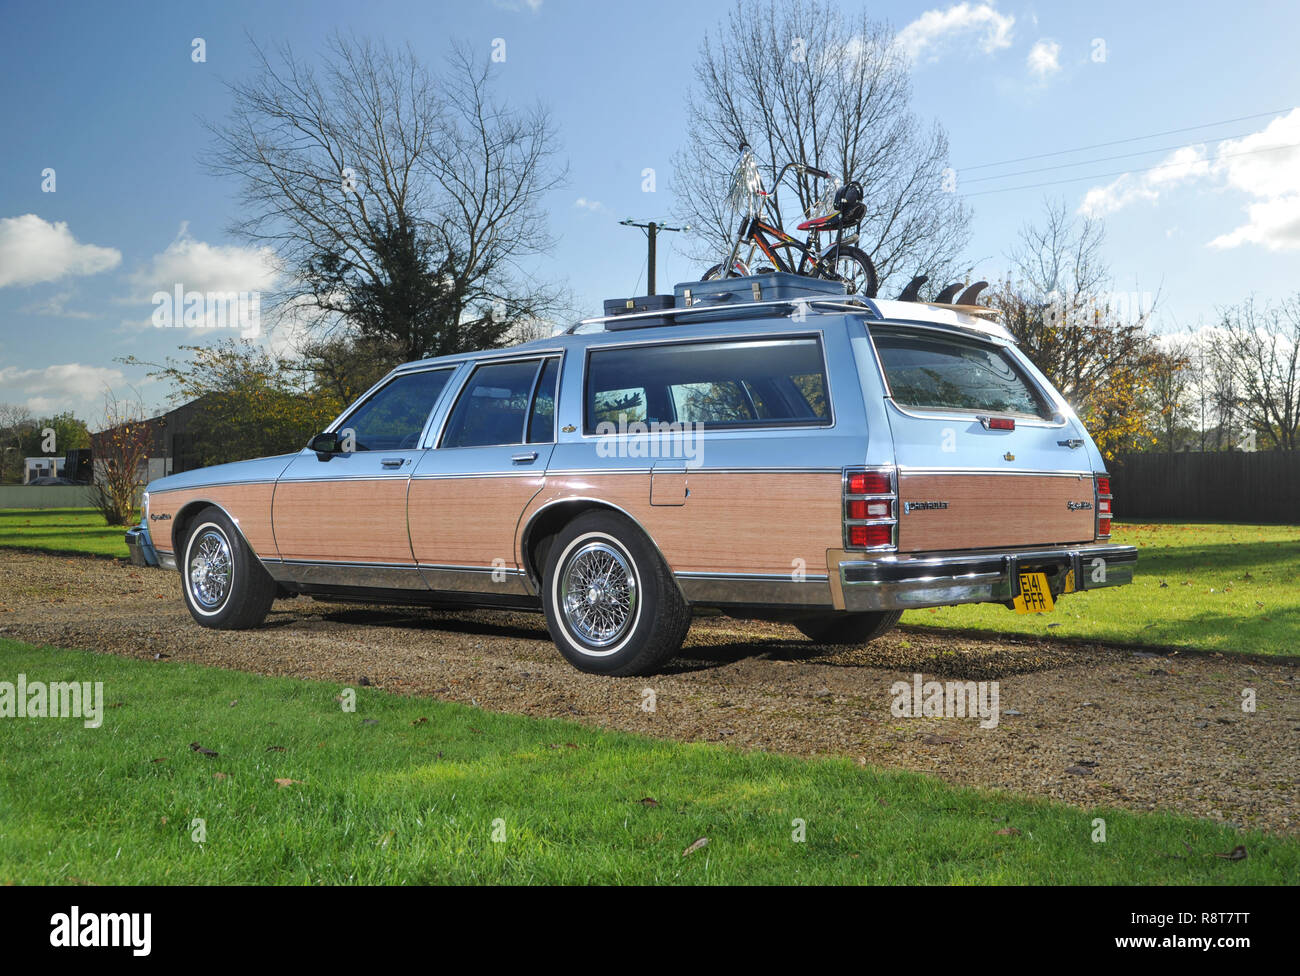 1986 Chevrolet Caprice 'Woody' station wagon, wood trimmed